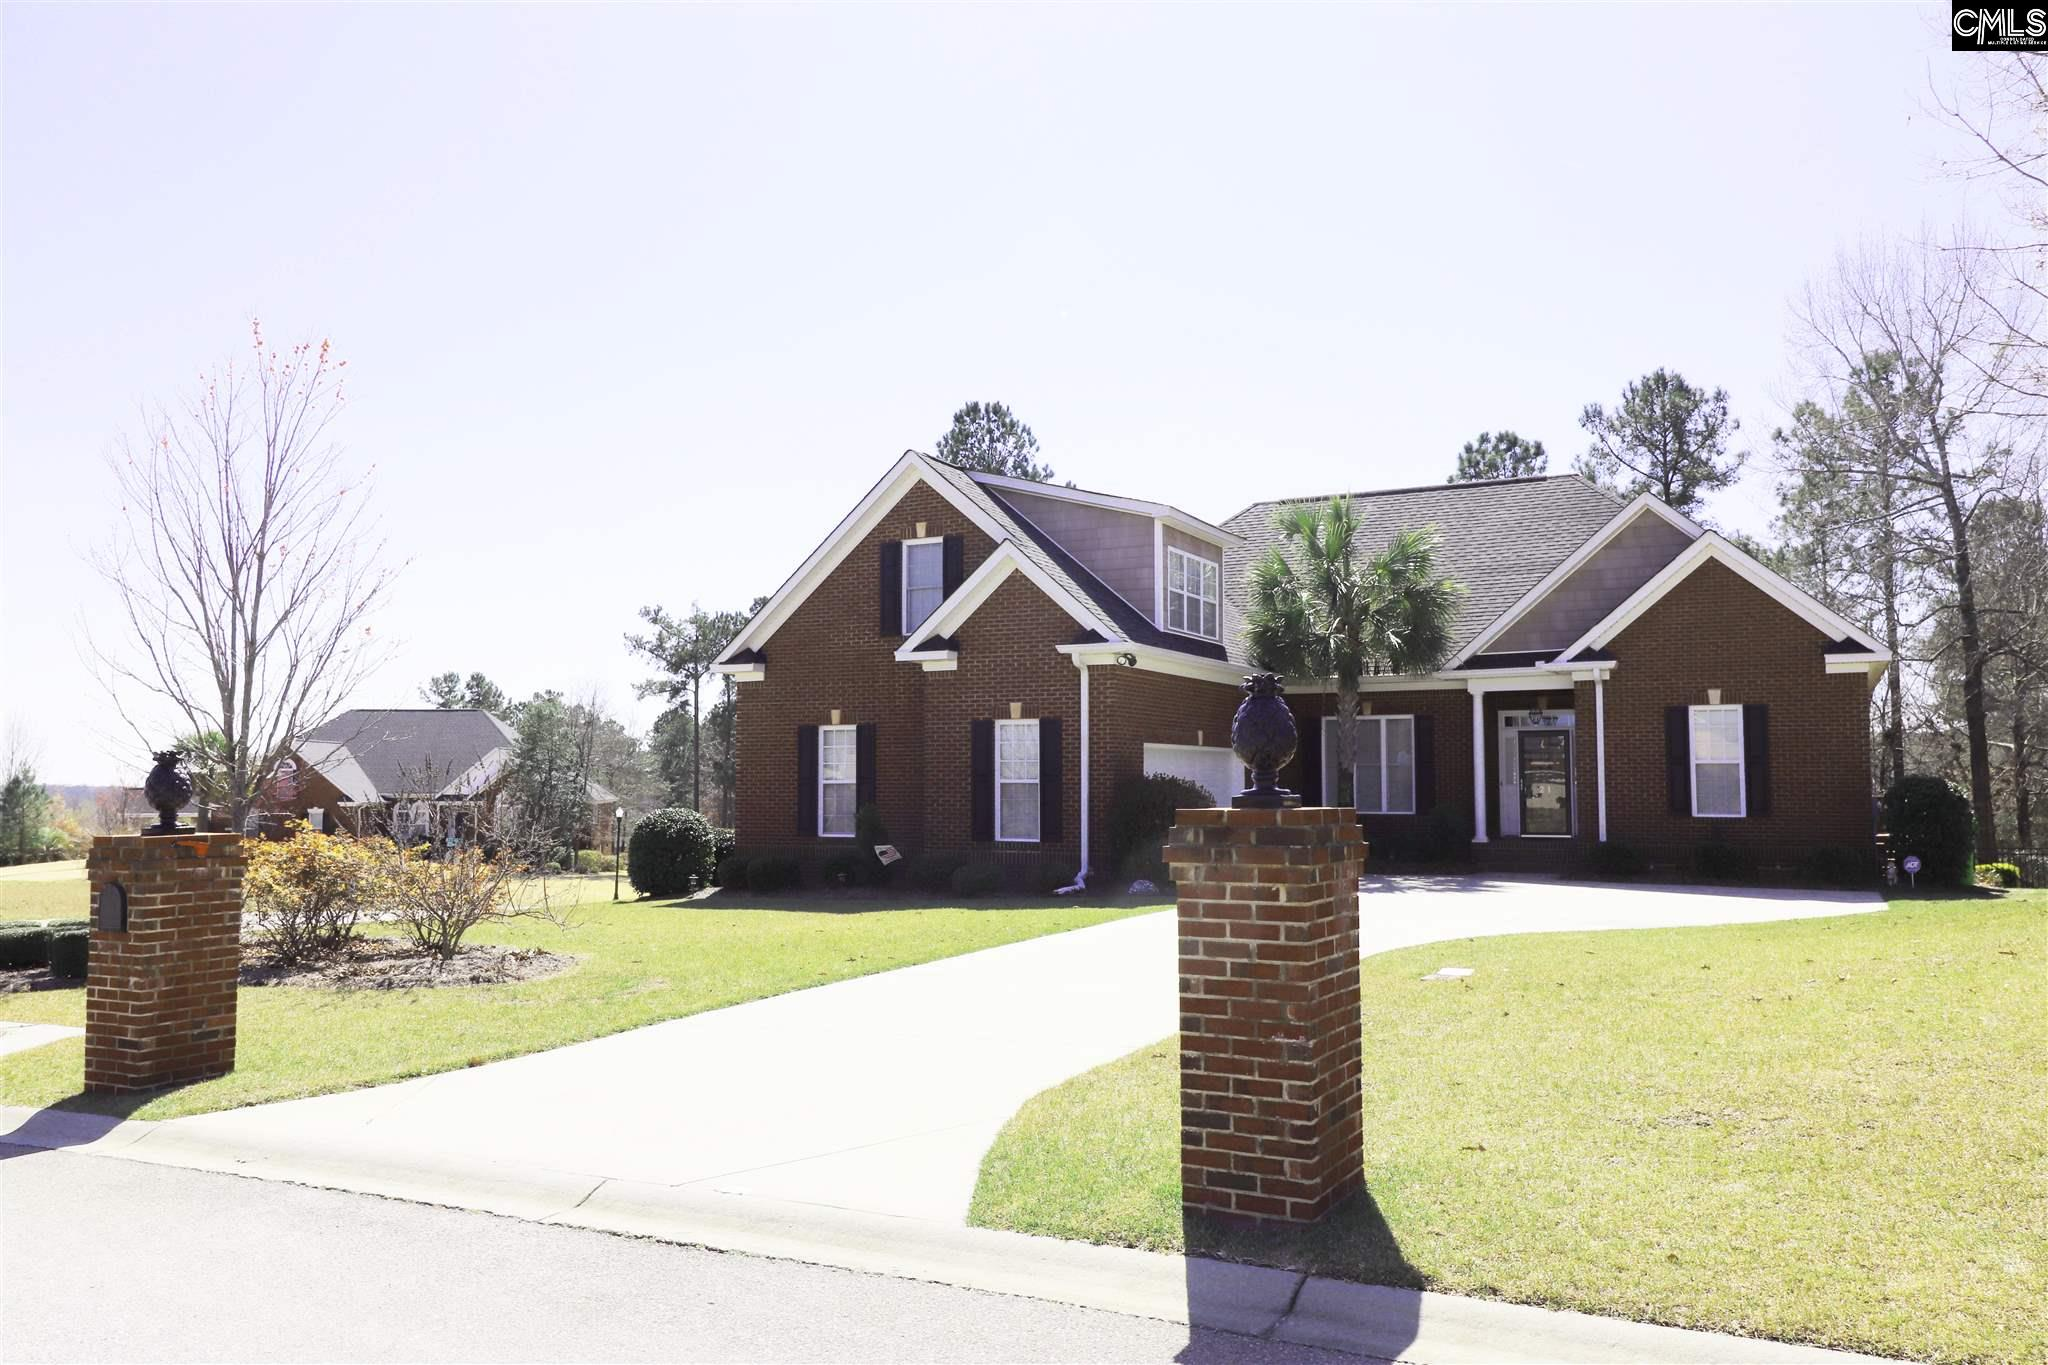 21  Winding Maple #54 Blythewood, SC 29016